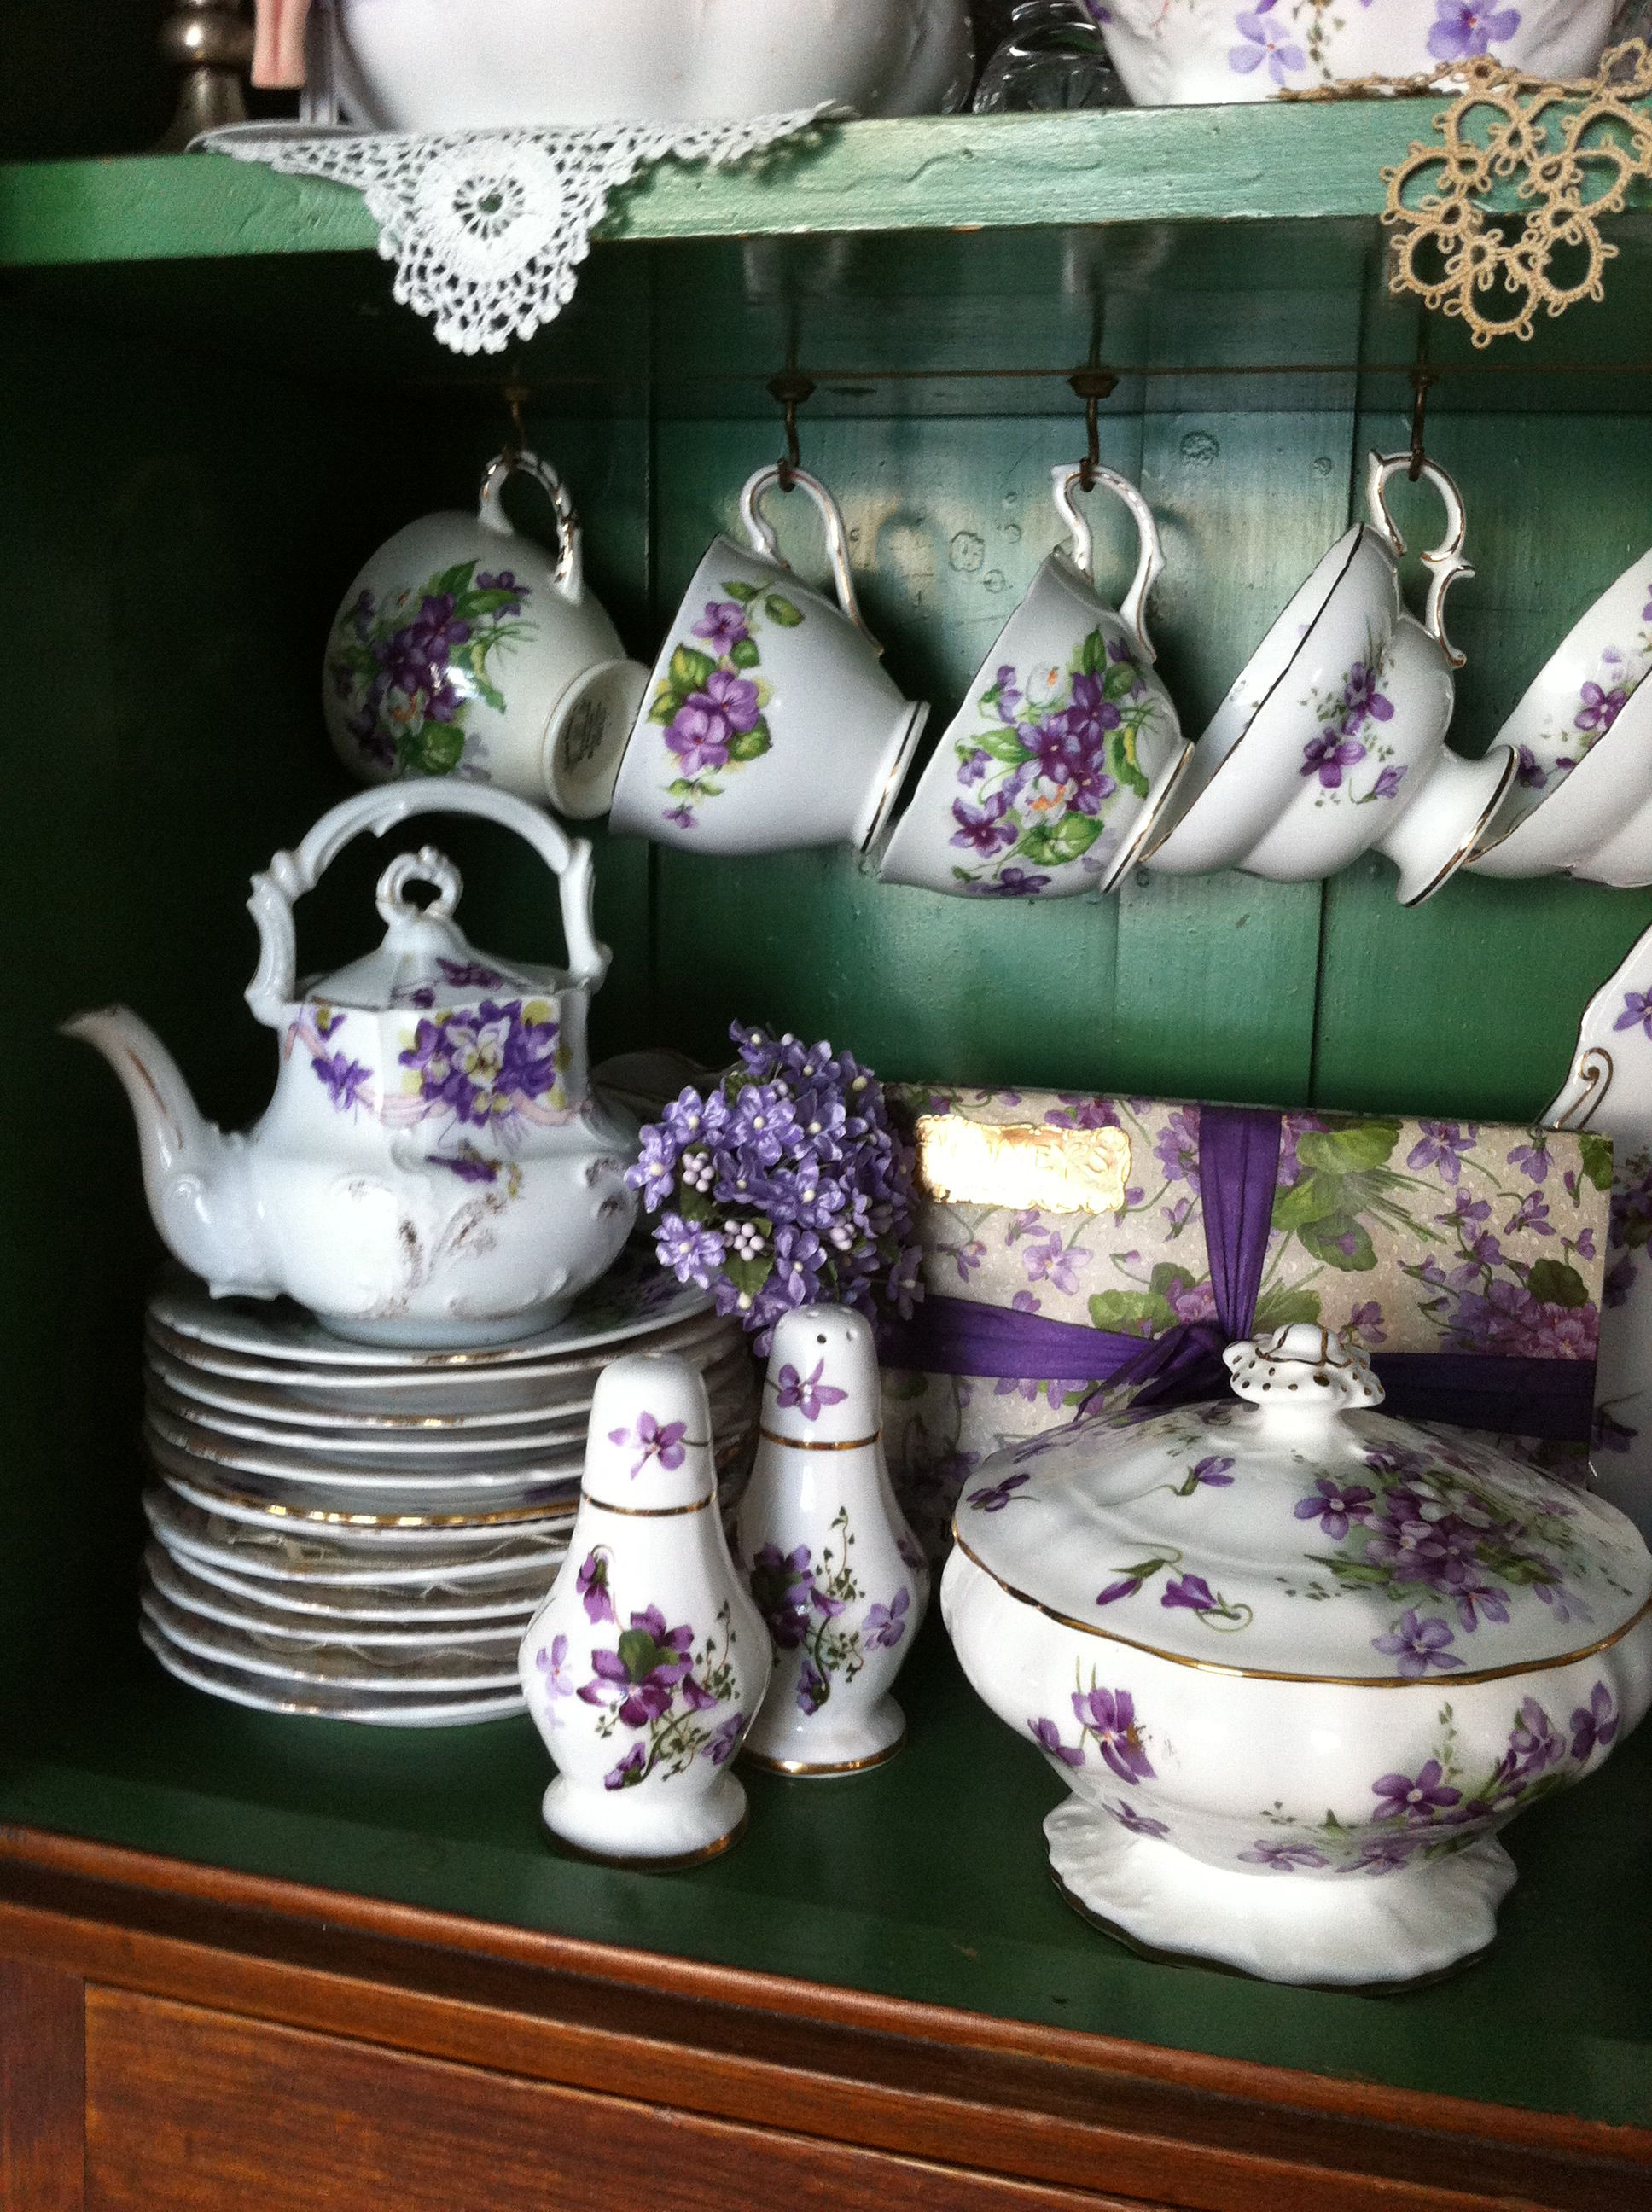 Violet China On Display